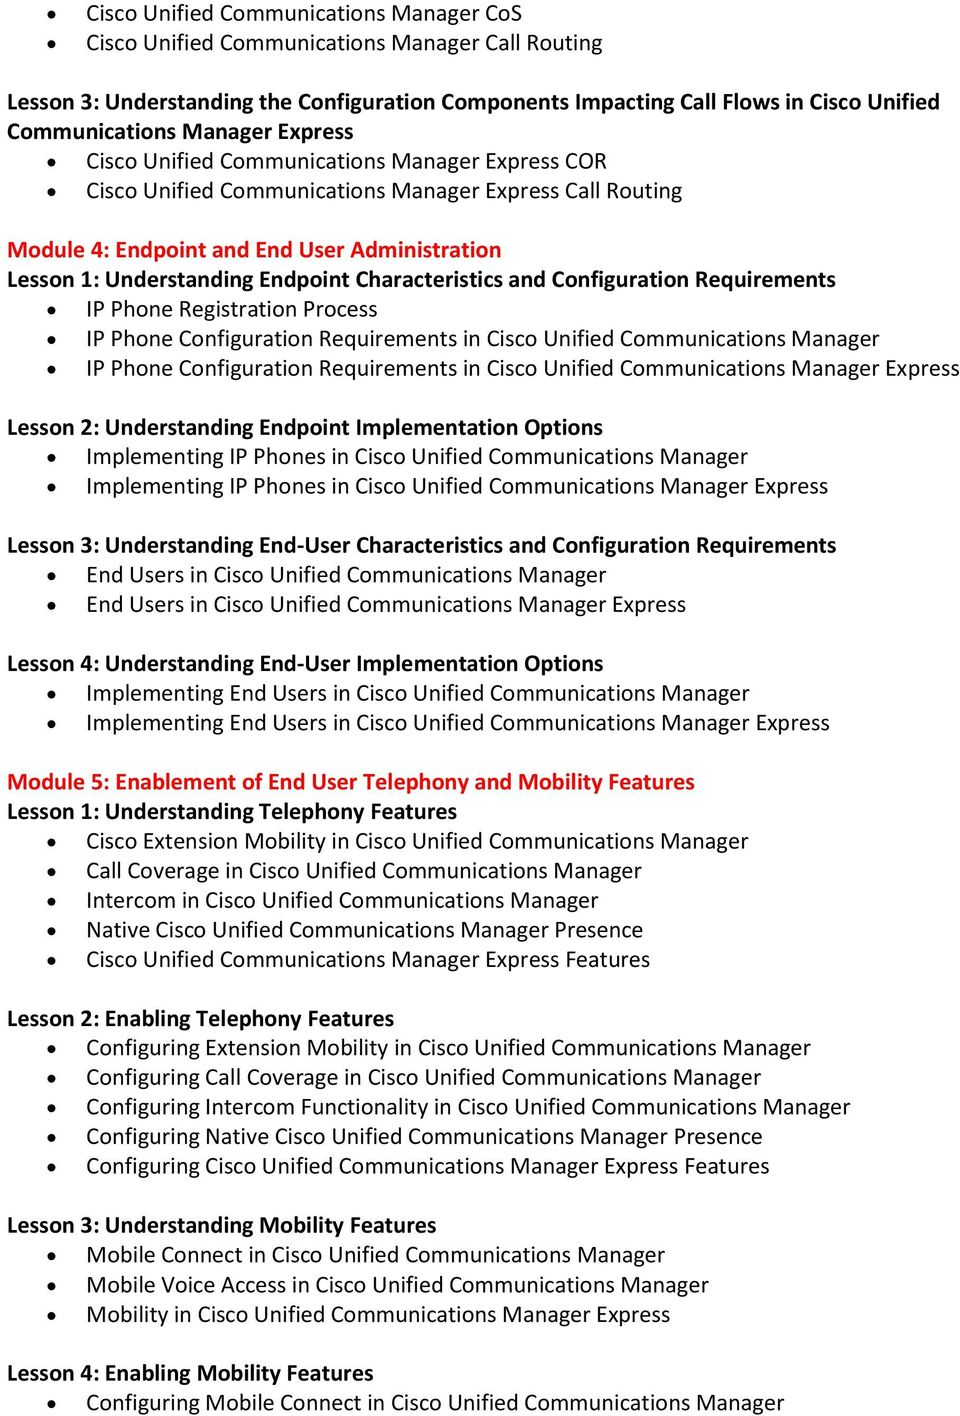 Endpoint Characteristics and Configuration Requirements IP Phone Registration Process IP Phone Configuration Requirements in Cisco Unified Communications Manager IP Phone Configuration Requirements